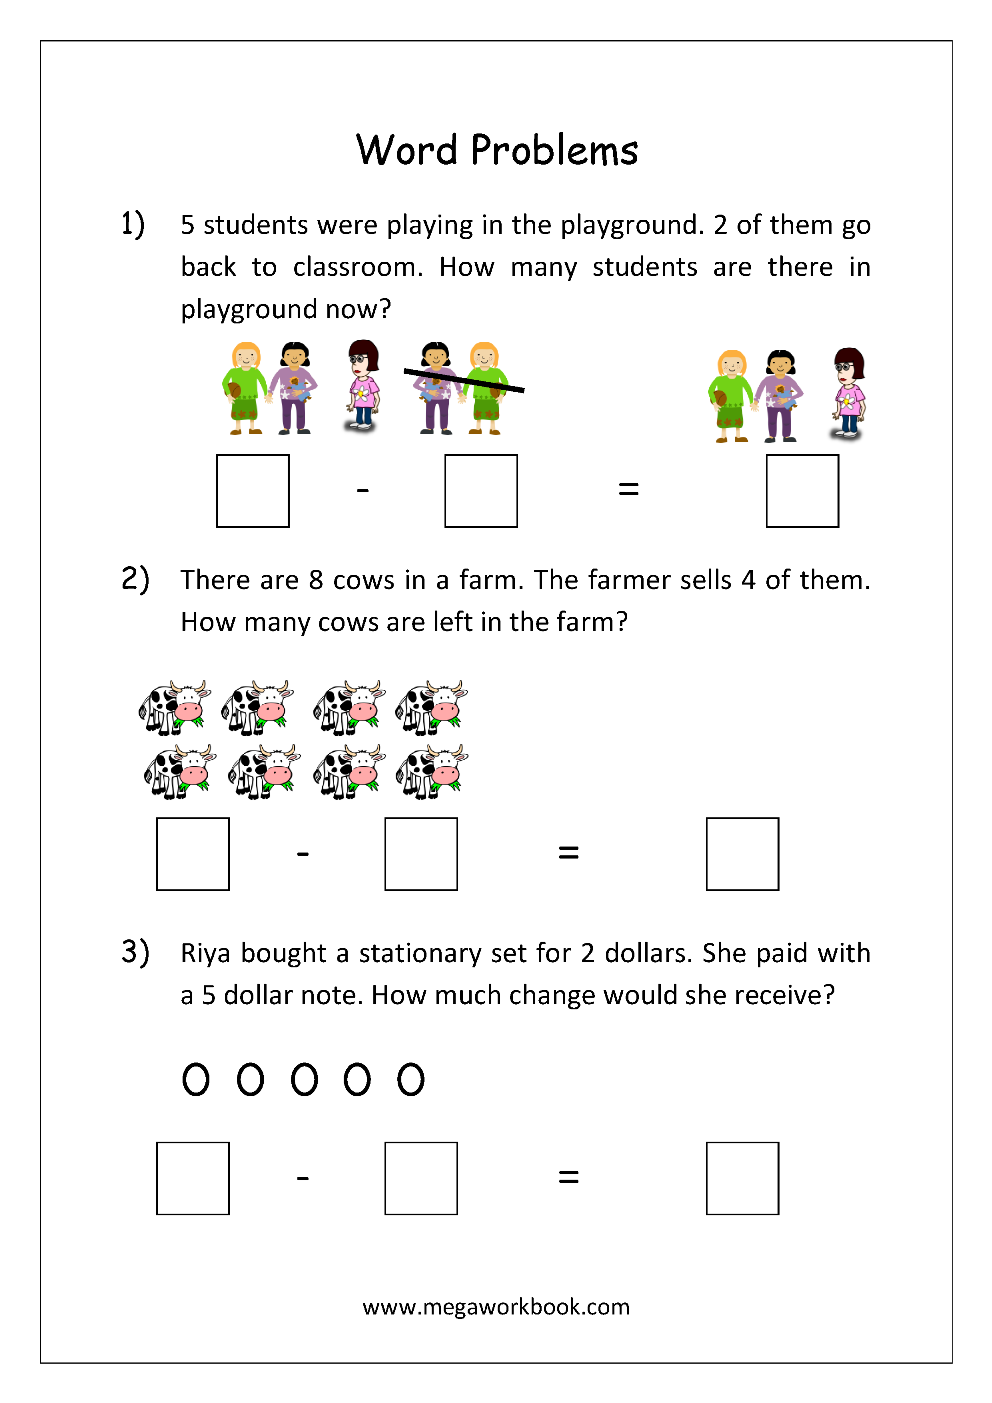 Addition and Subtraction Word Problems Worksheets For Kindergarten and Grade  1 - Story Sums - S…   Word problem worksheets [ 1403 x 992 Pixel ]